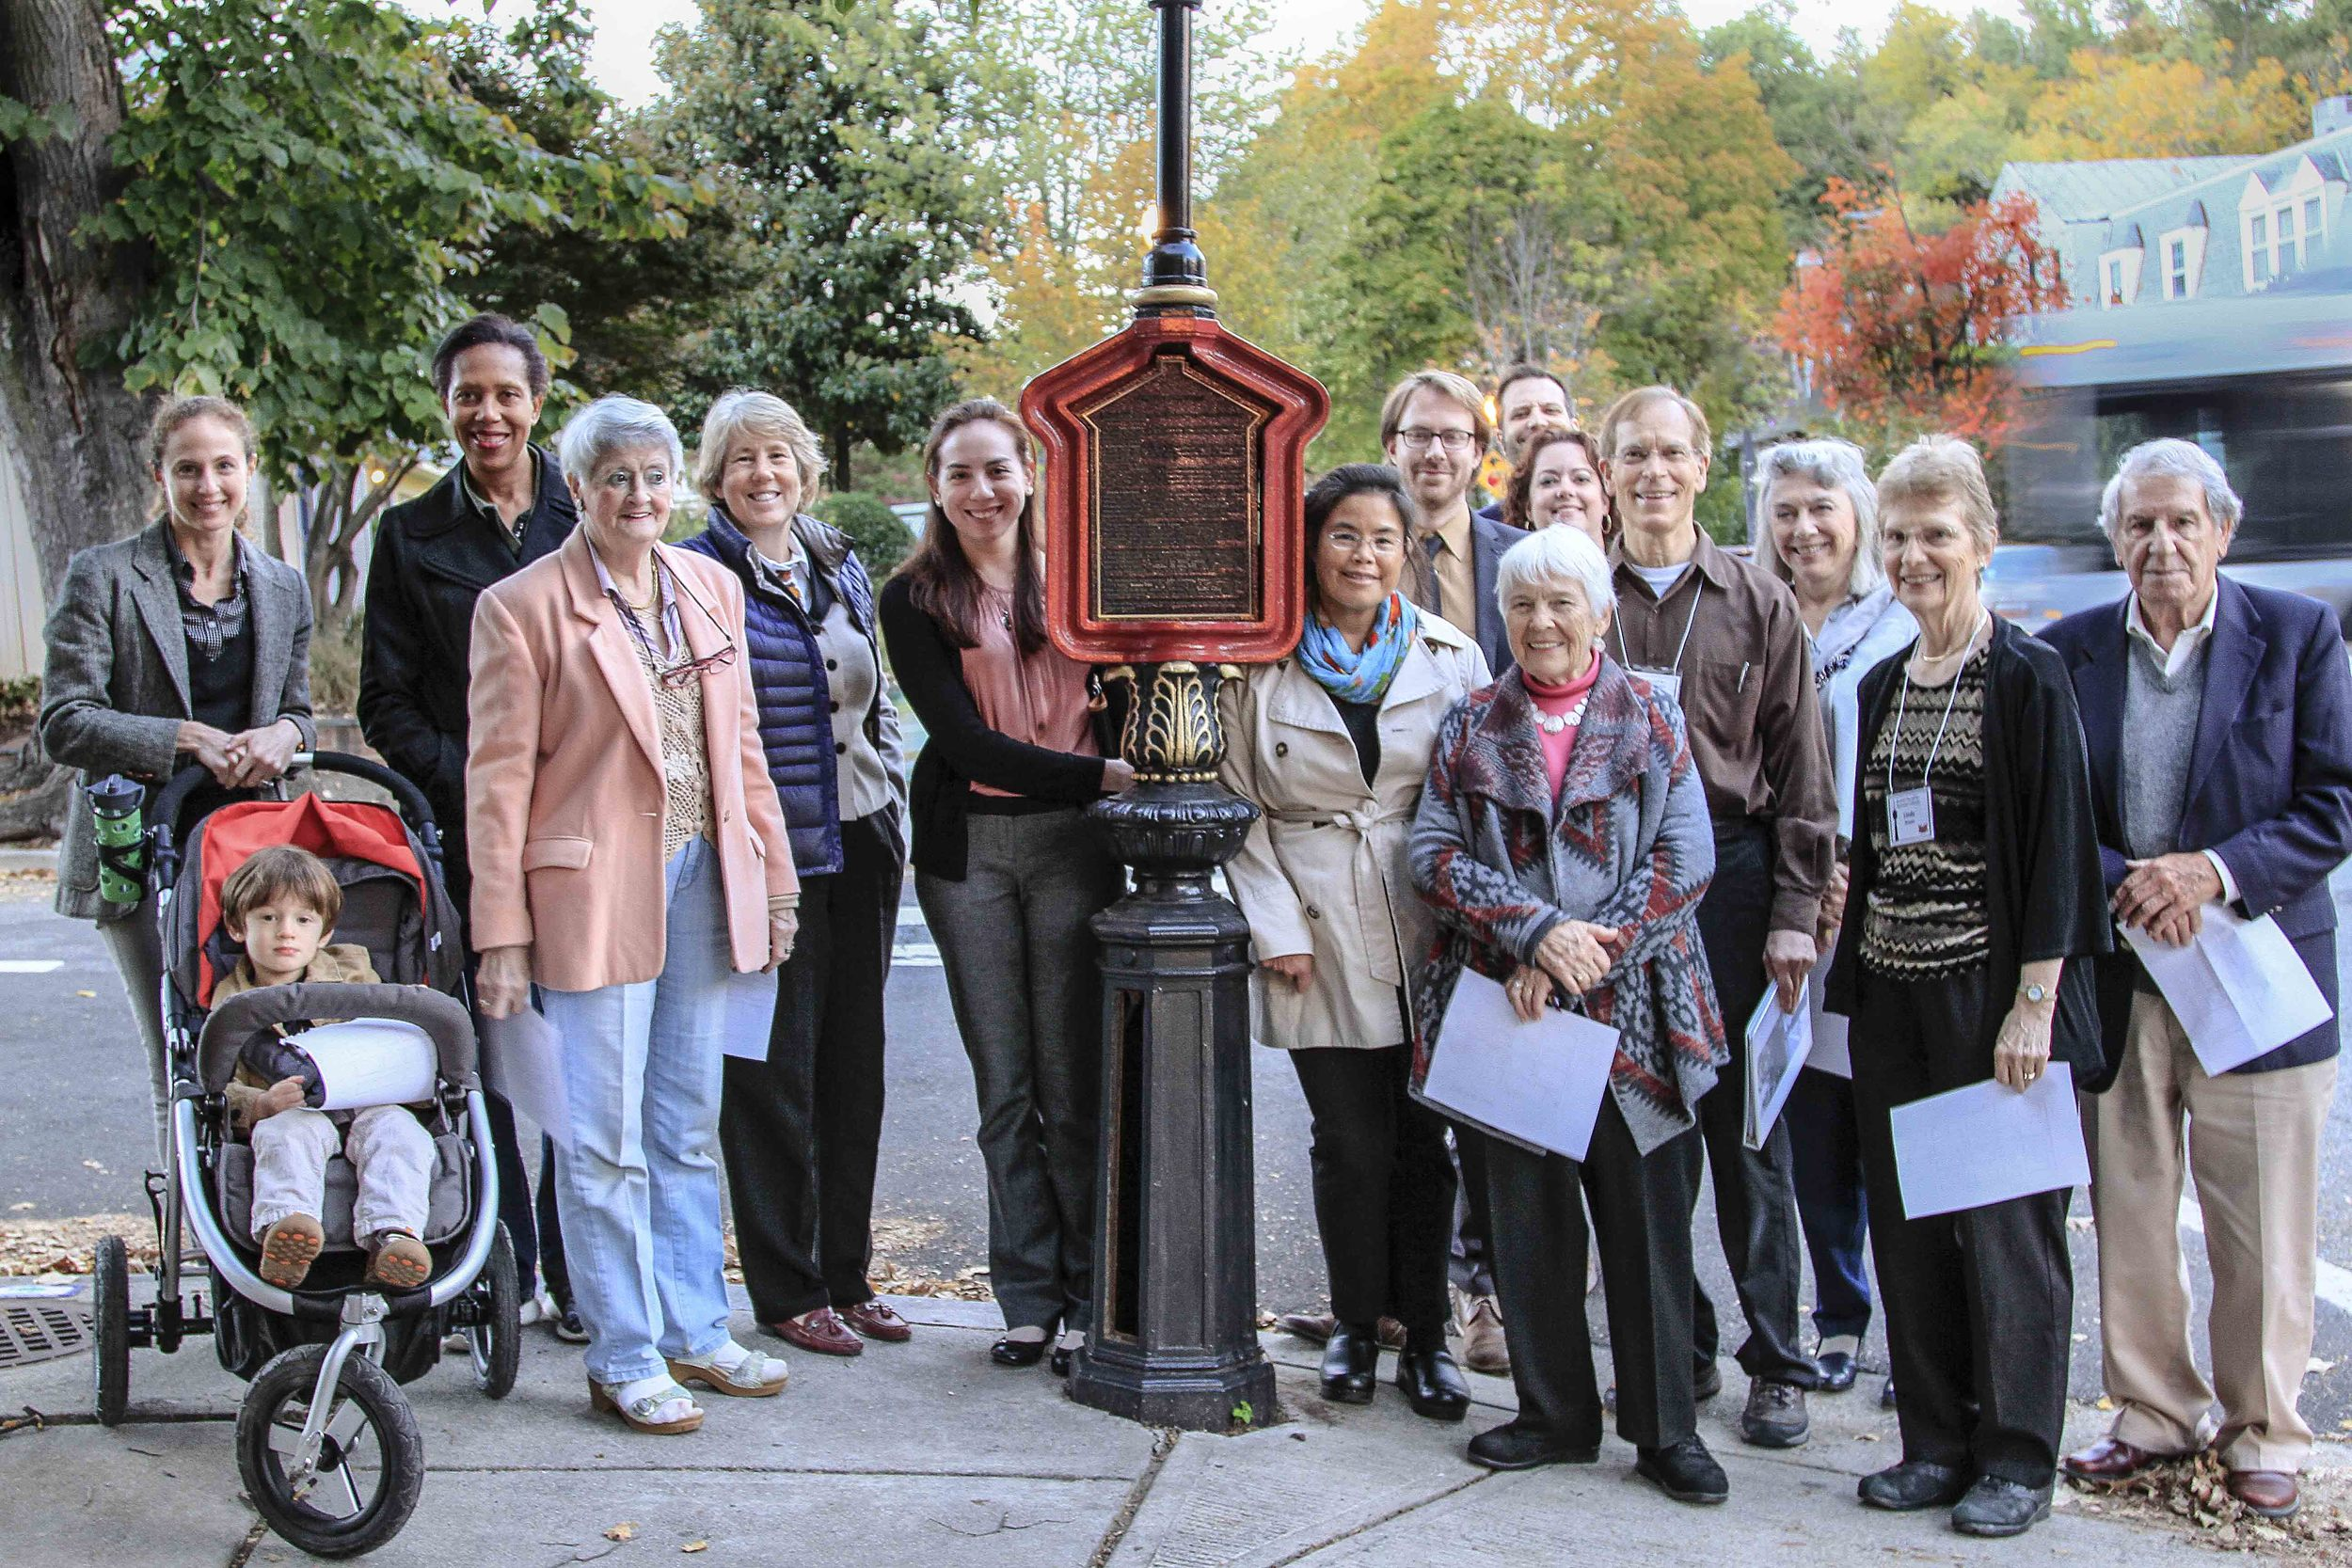 A tour of the restored call boxes preceded the party, which was scheduled for 6:30–8:30 pm and was still going strong after 9 pm. photo by alex frederick.